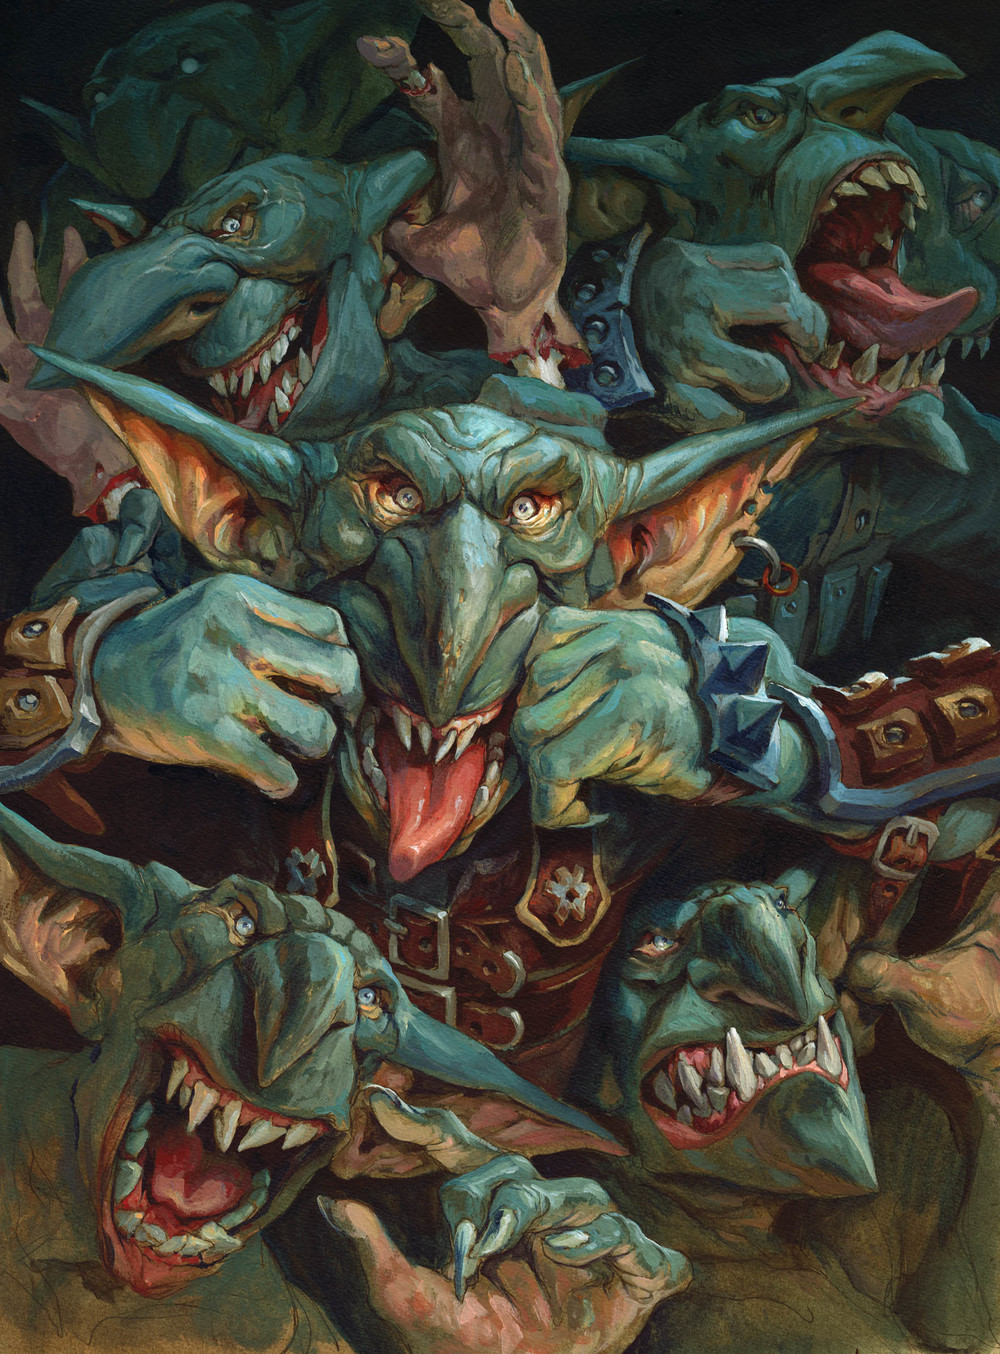 [bank] Les artistes que vous adorez - Page 9 Art+id+149172+Taunting+Goblins+final